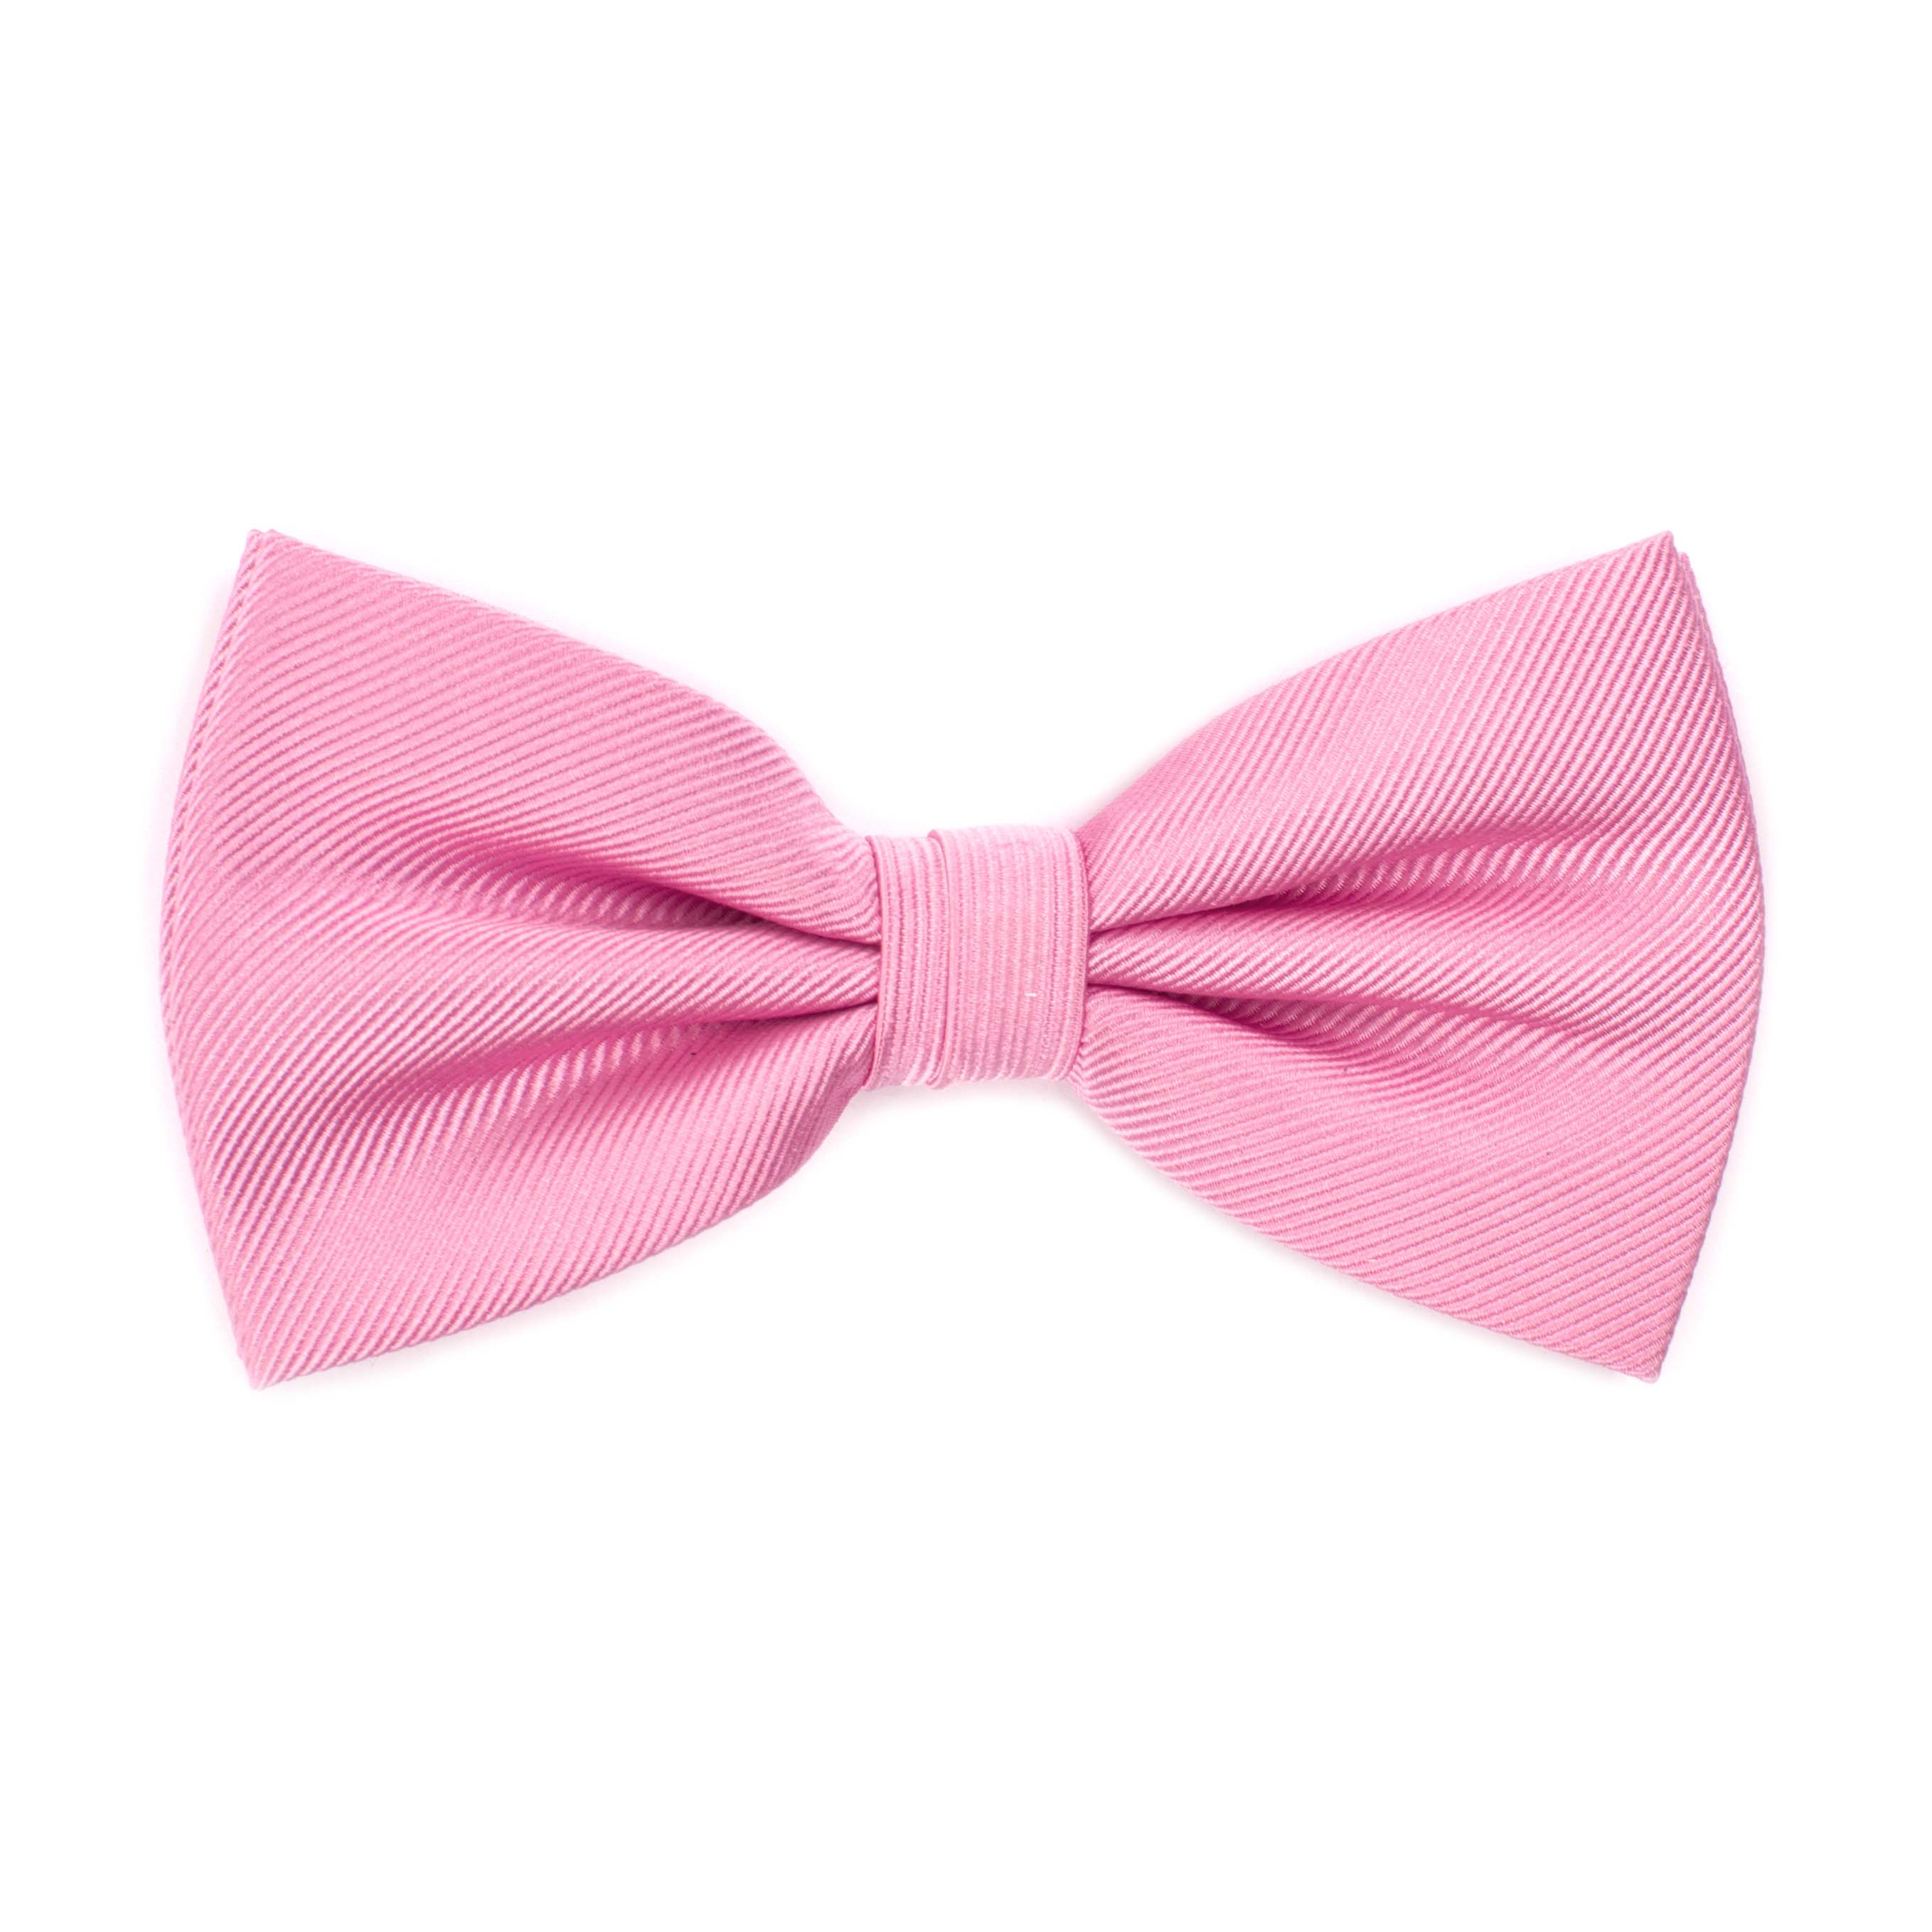 Bow tie classic ribbed pink